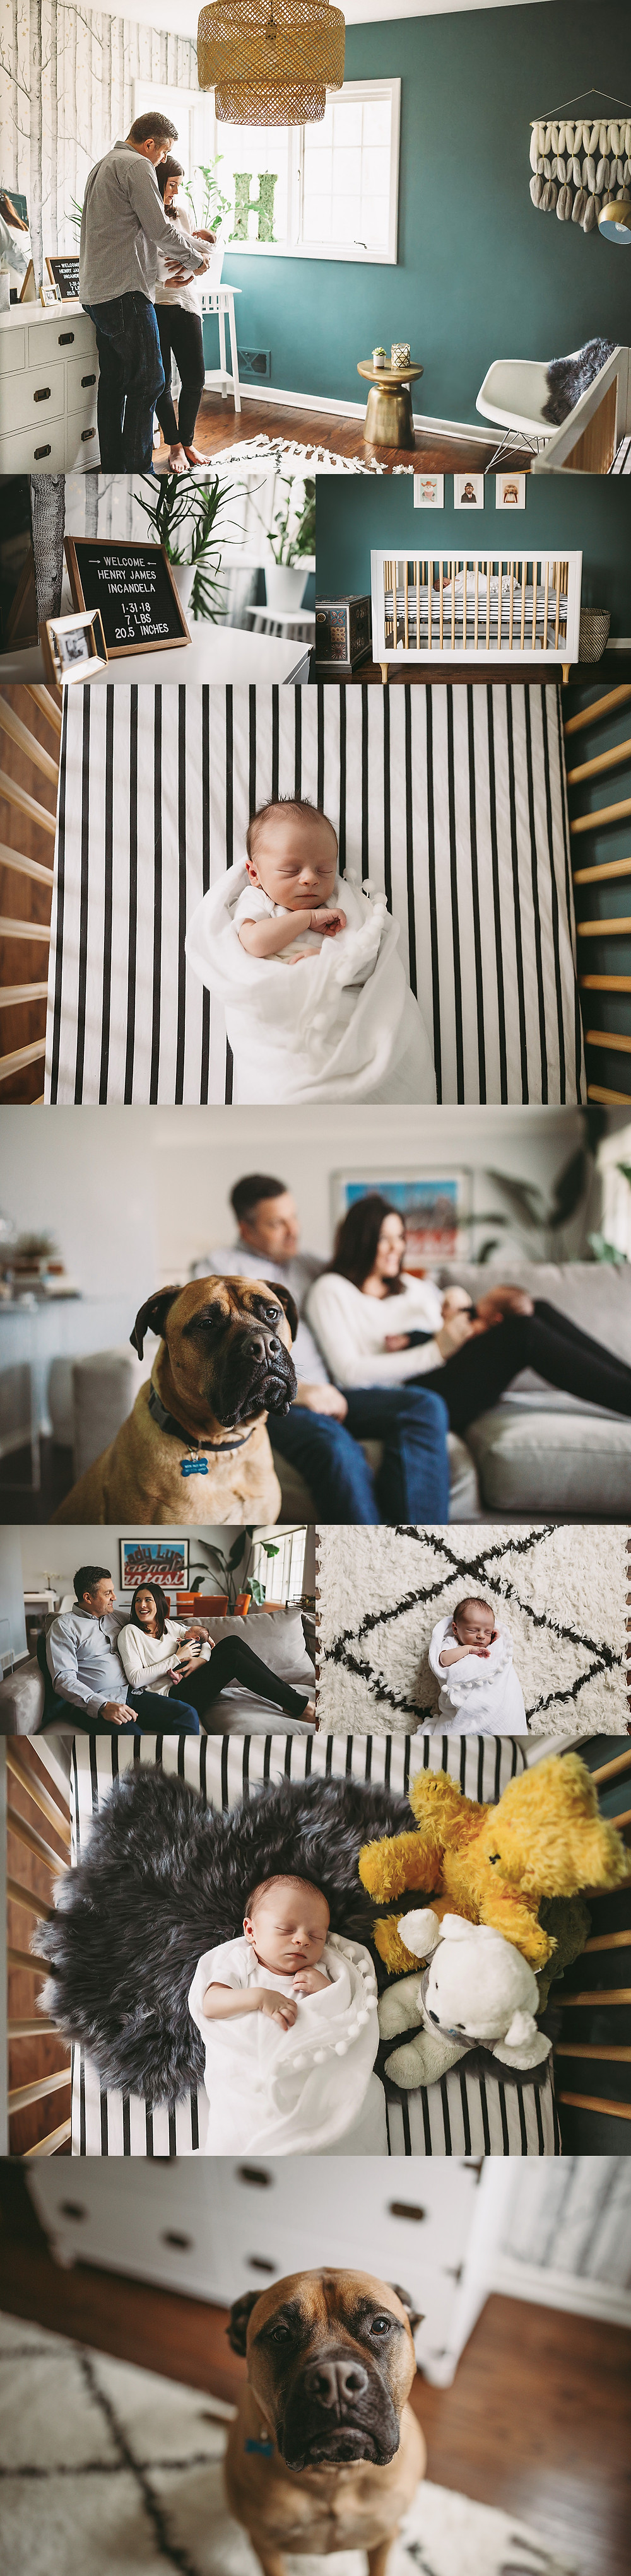 Indianapolis Newborn Photographer, Alex Morris Design